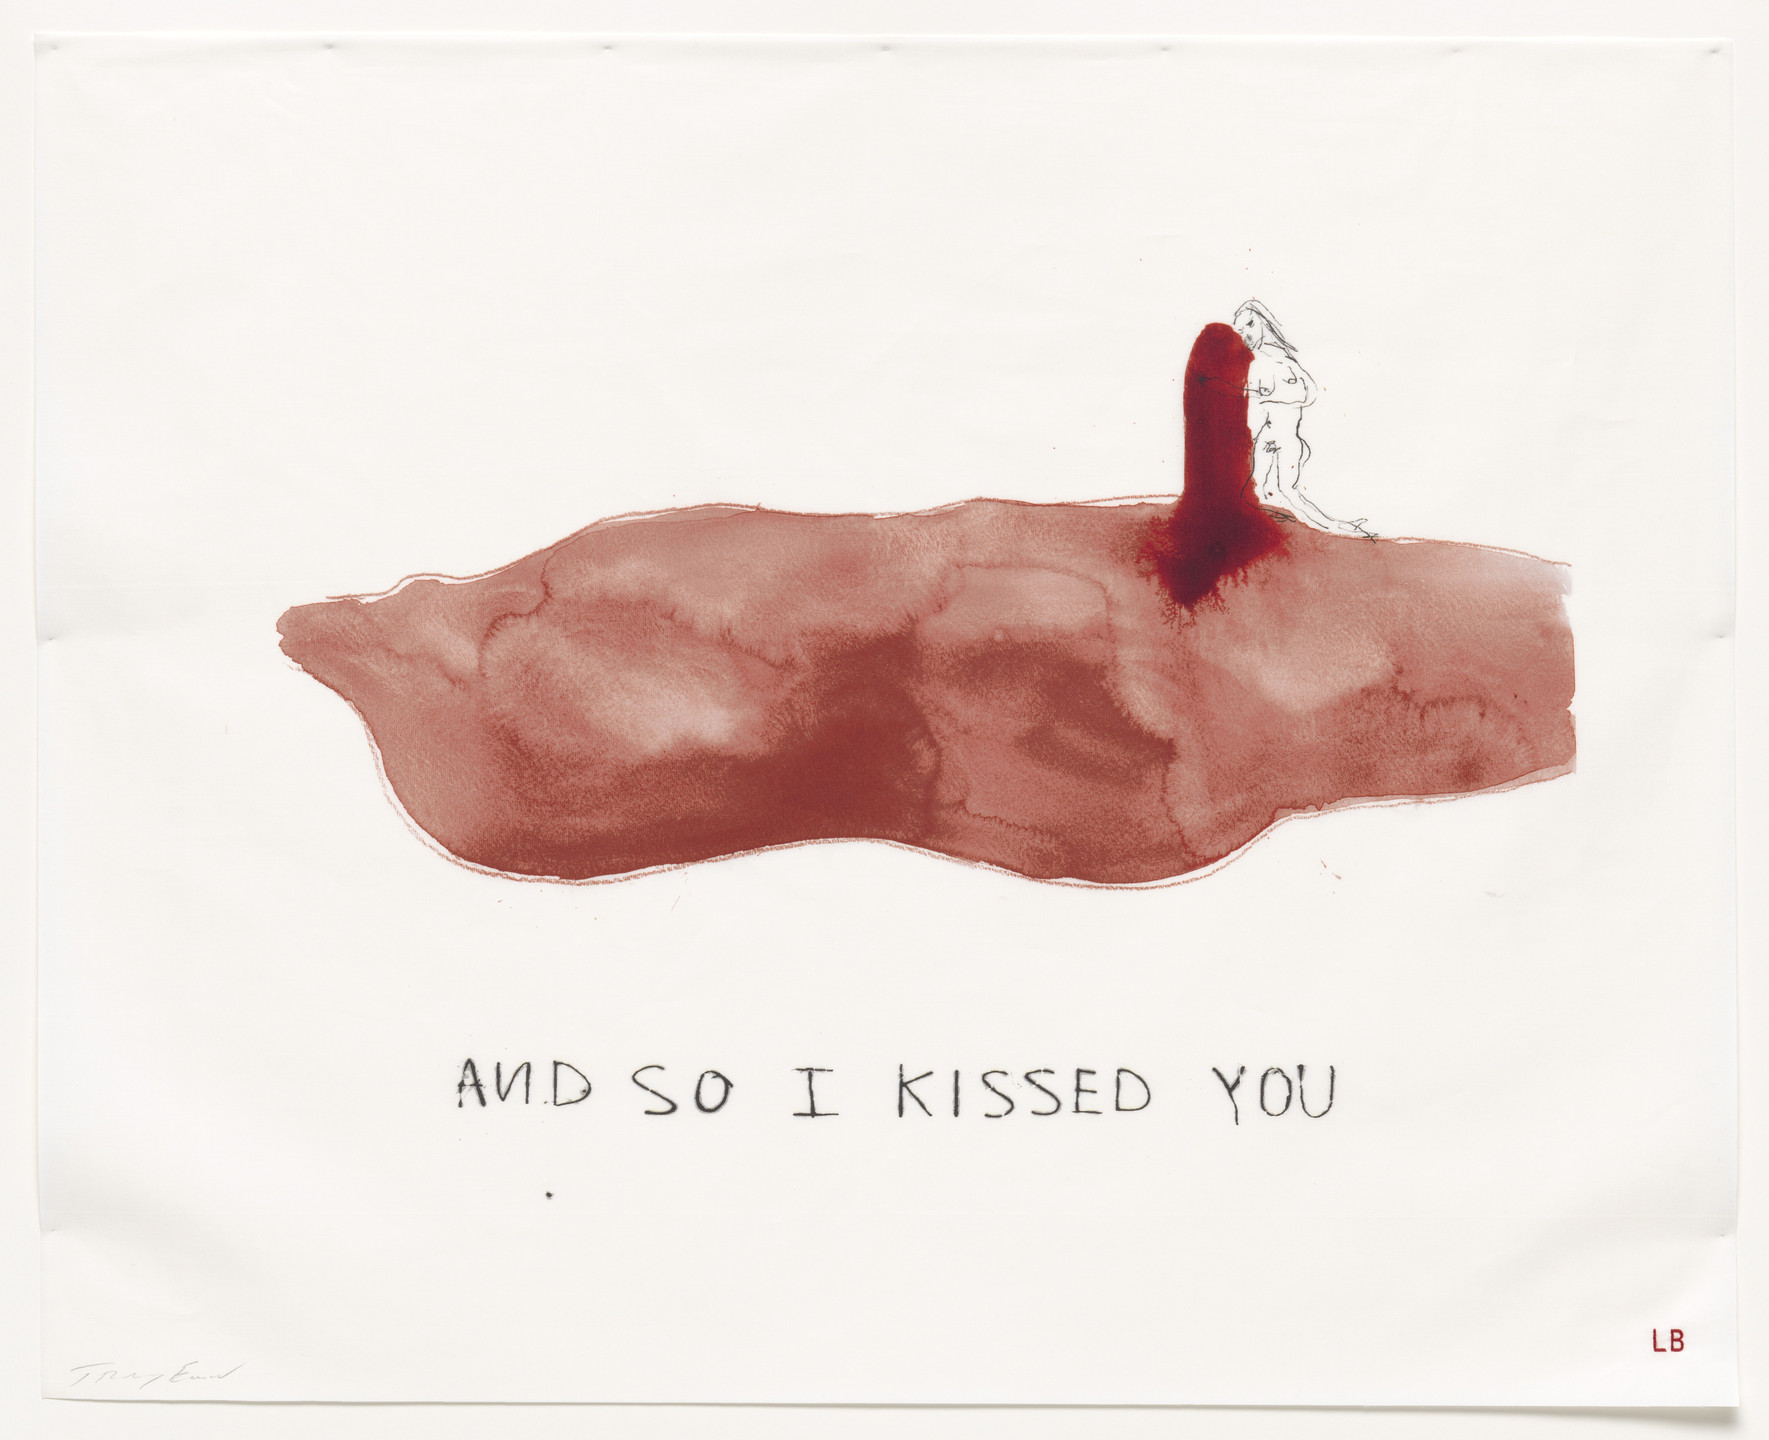 Louise Bourgeois, Tracey Emin. And So I Kissed You, no. 4 of 16, from the series, Do Not Abandon Me. 2009-2010